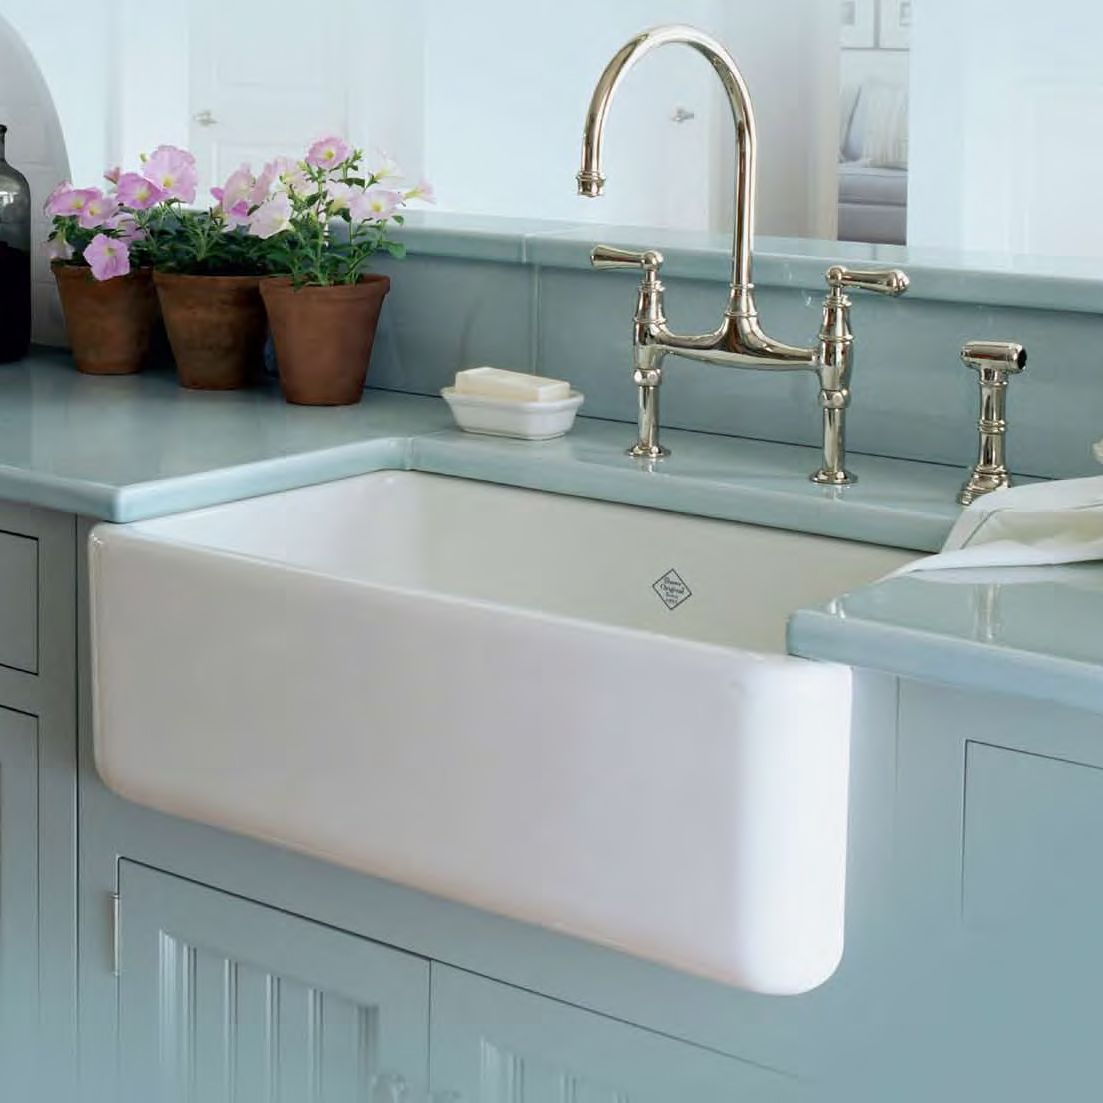 Rohl Shaws 33 Fireclay Farmhouse Apron Sink White Rc3318wh The